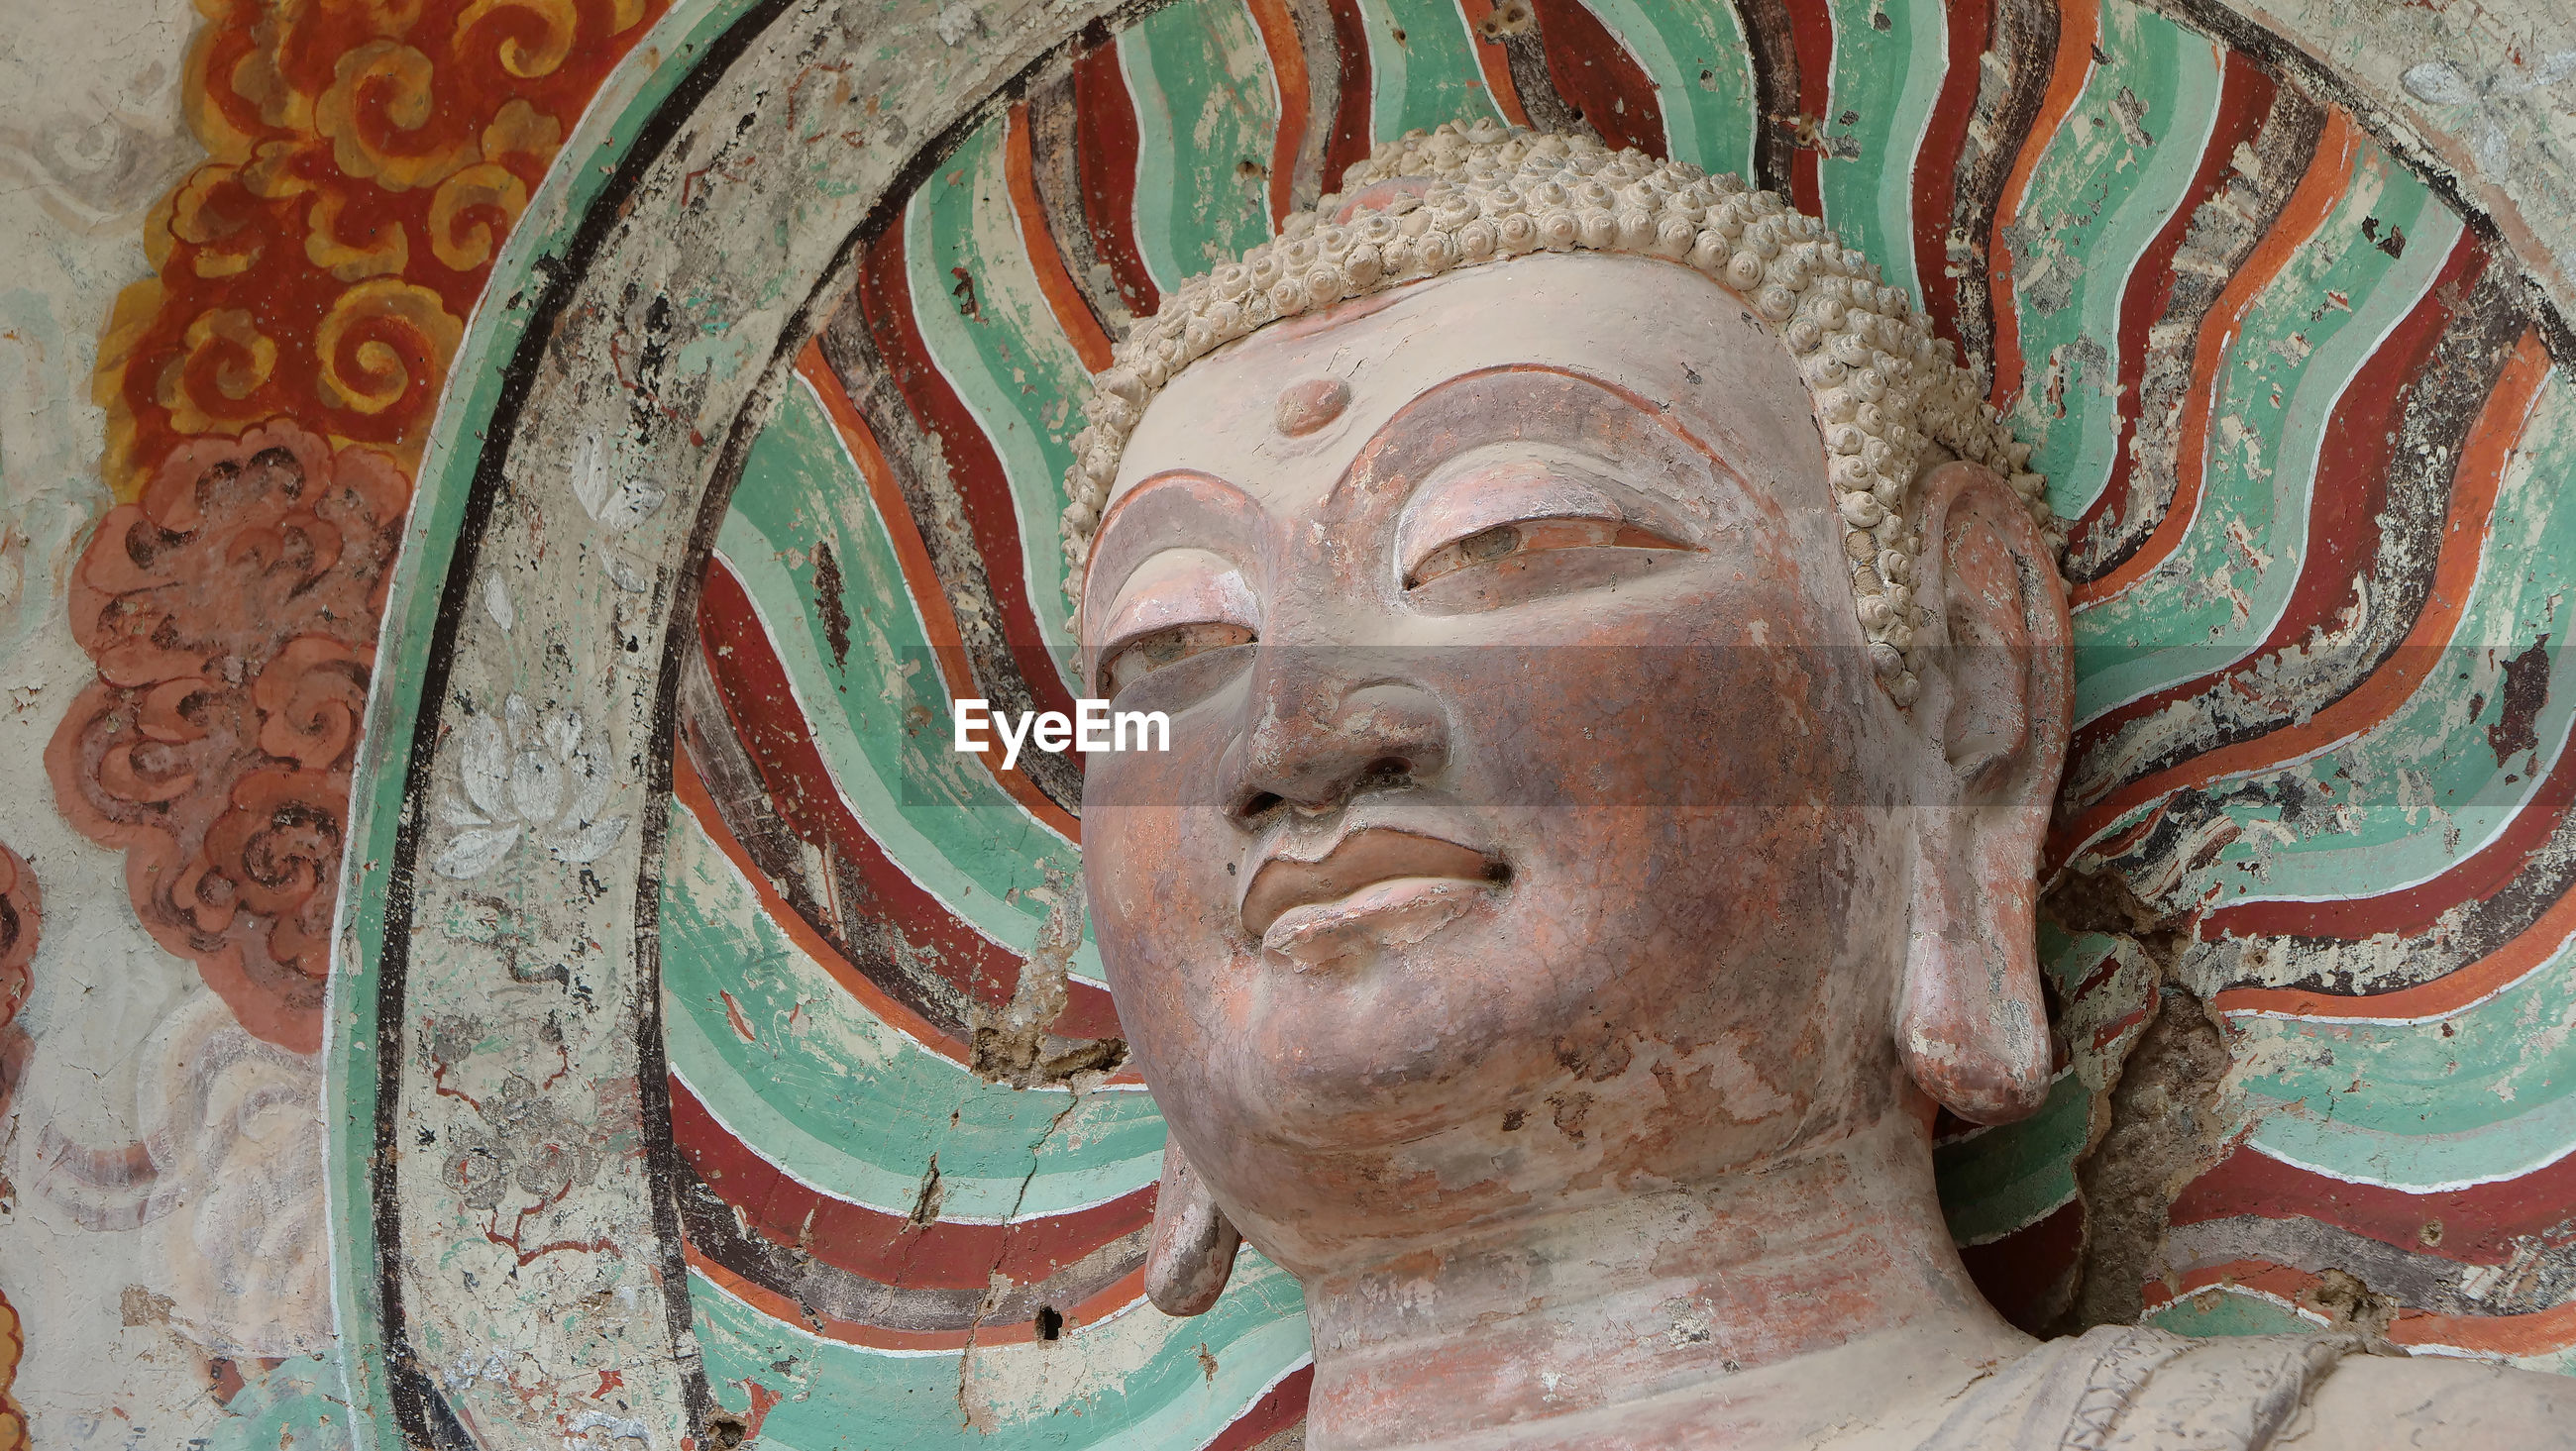 CLOSE-UP OF BUDDHA STATUE AGAINST TEMPLE BUILDING